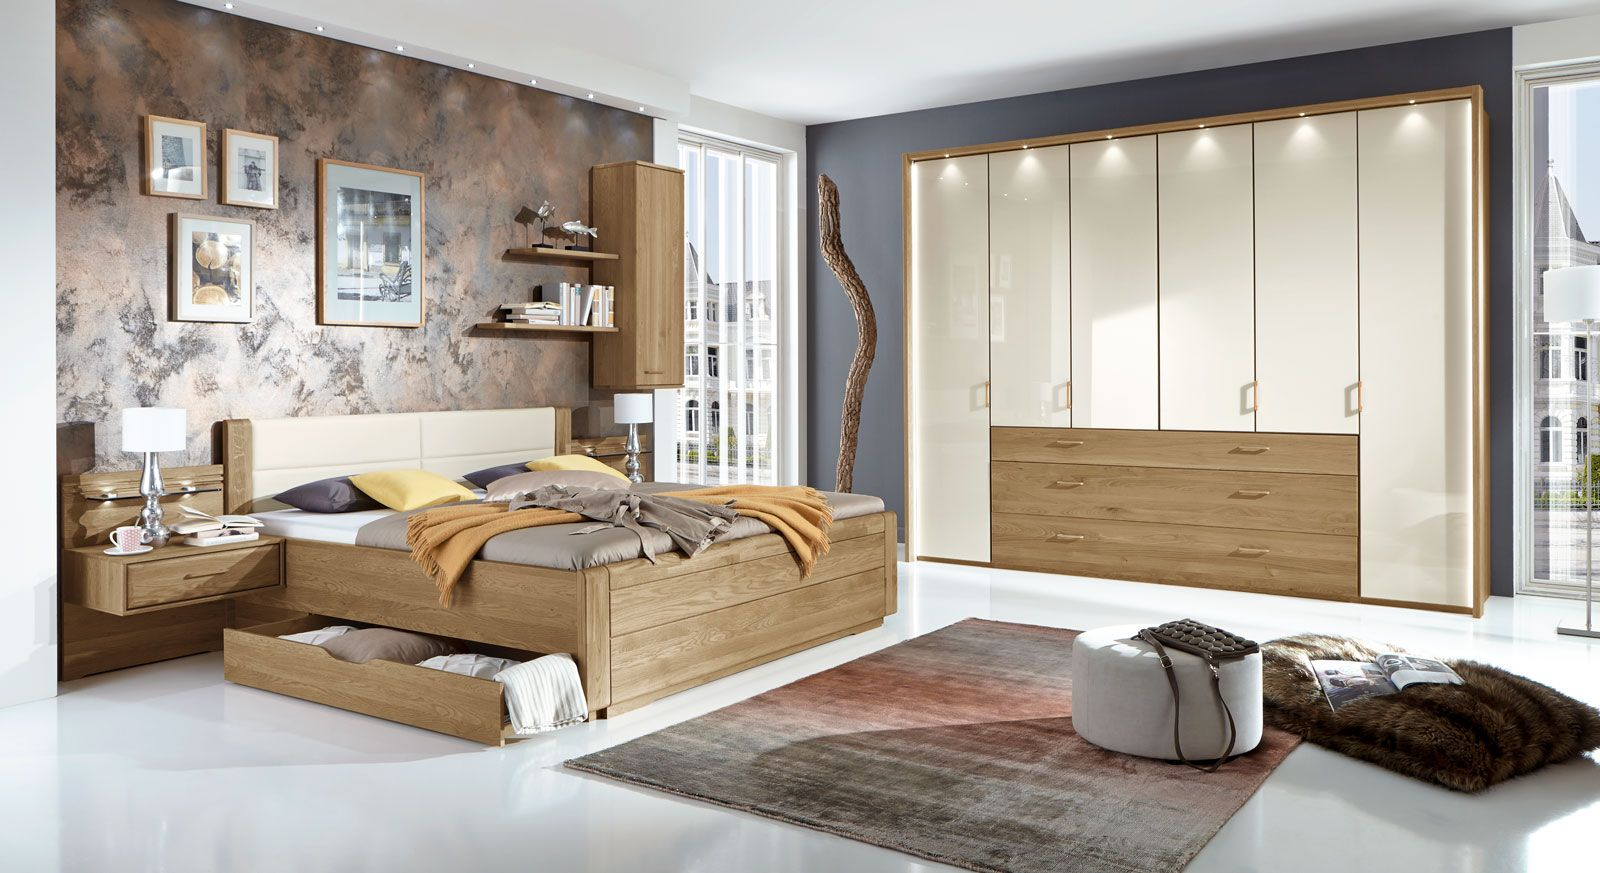 Schlafzimmer Billig Gestalten Home Decor Room Home Furniture